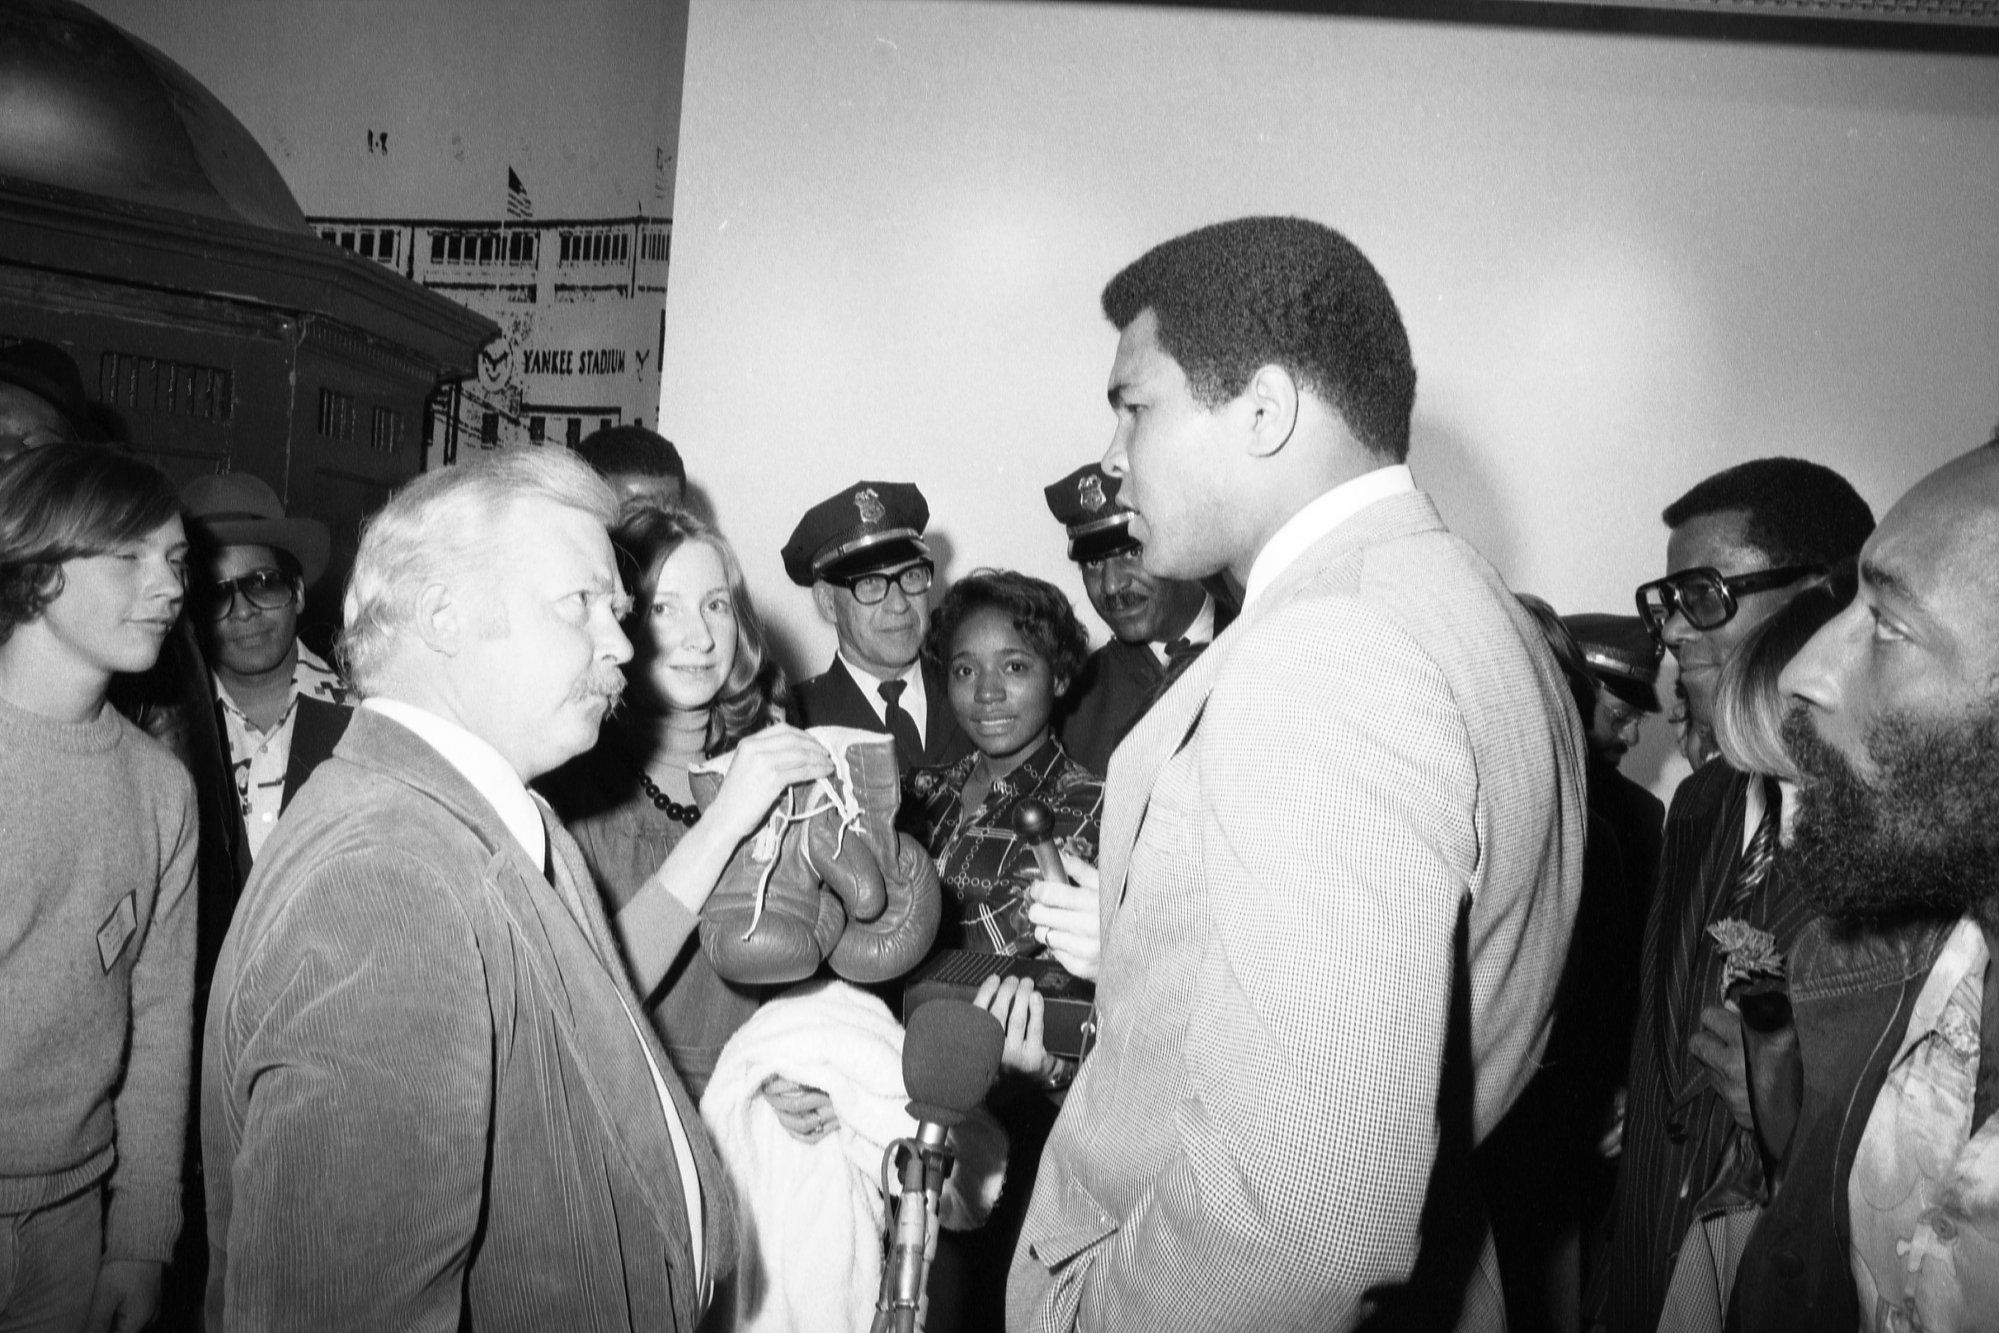 Muhammad Ali visited the museum on March 17, 1976, and donated a pair of boxing gloves and a robe to the museum. Photo courtesy of the Smithsonian Institution Archives.